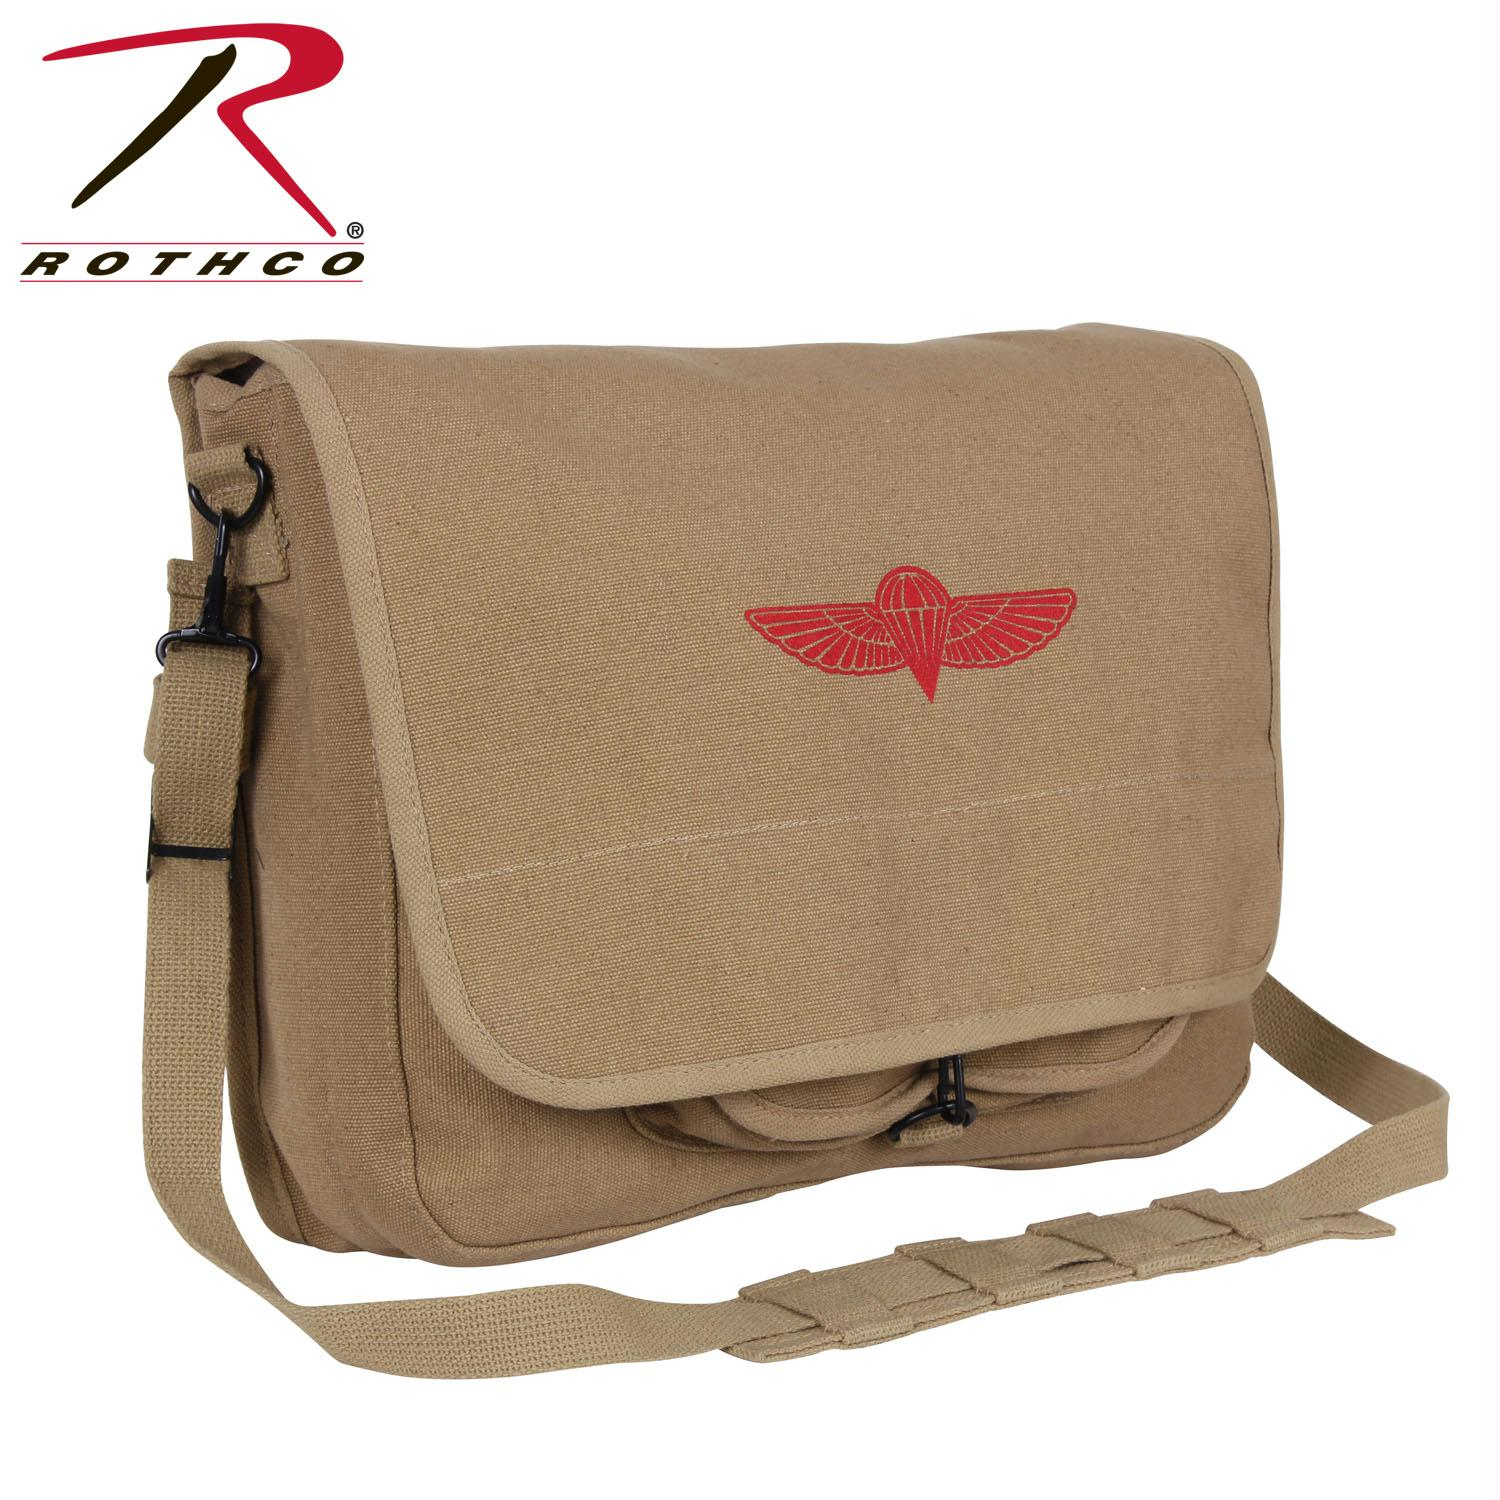 Rothco Canvas Israeli Paratrooper Bag - Khaki